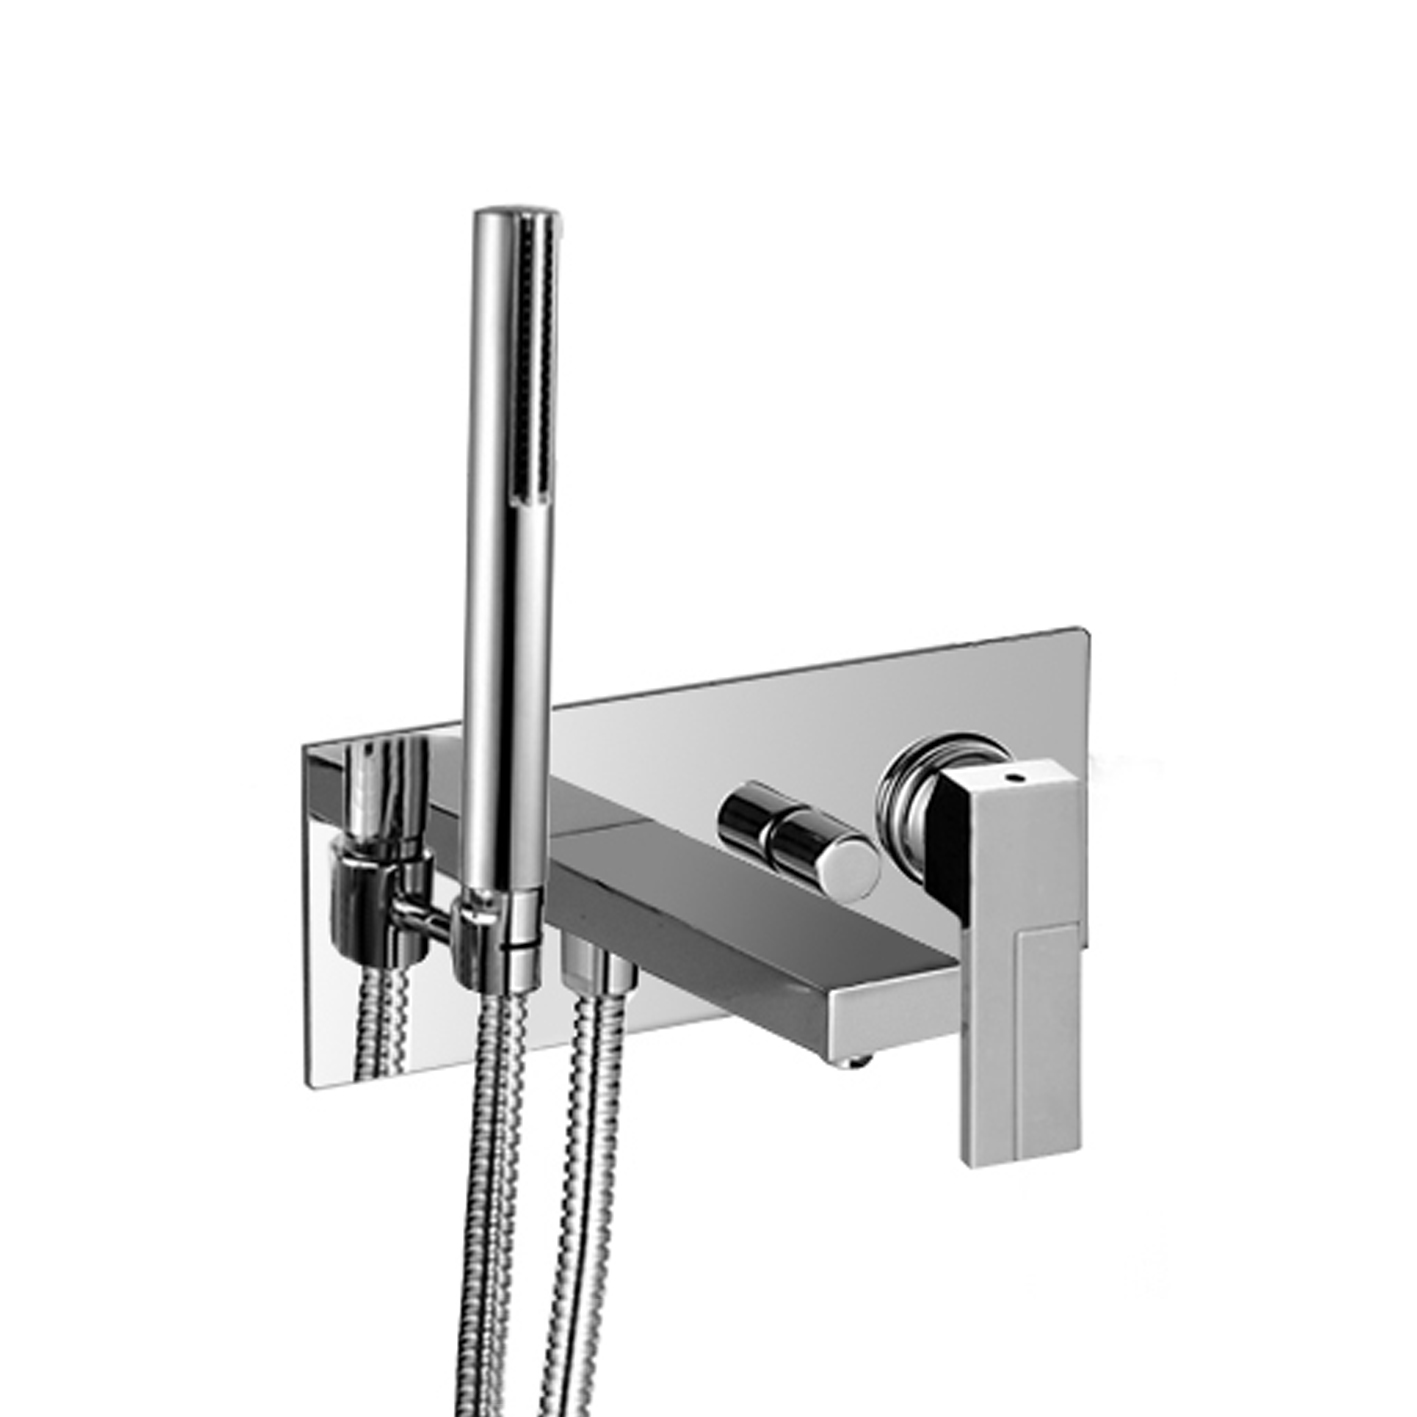 Fantini 3320SB+3320AU Plano In-Wall non-Thermostatic Single-Control Tub Mixer